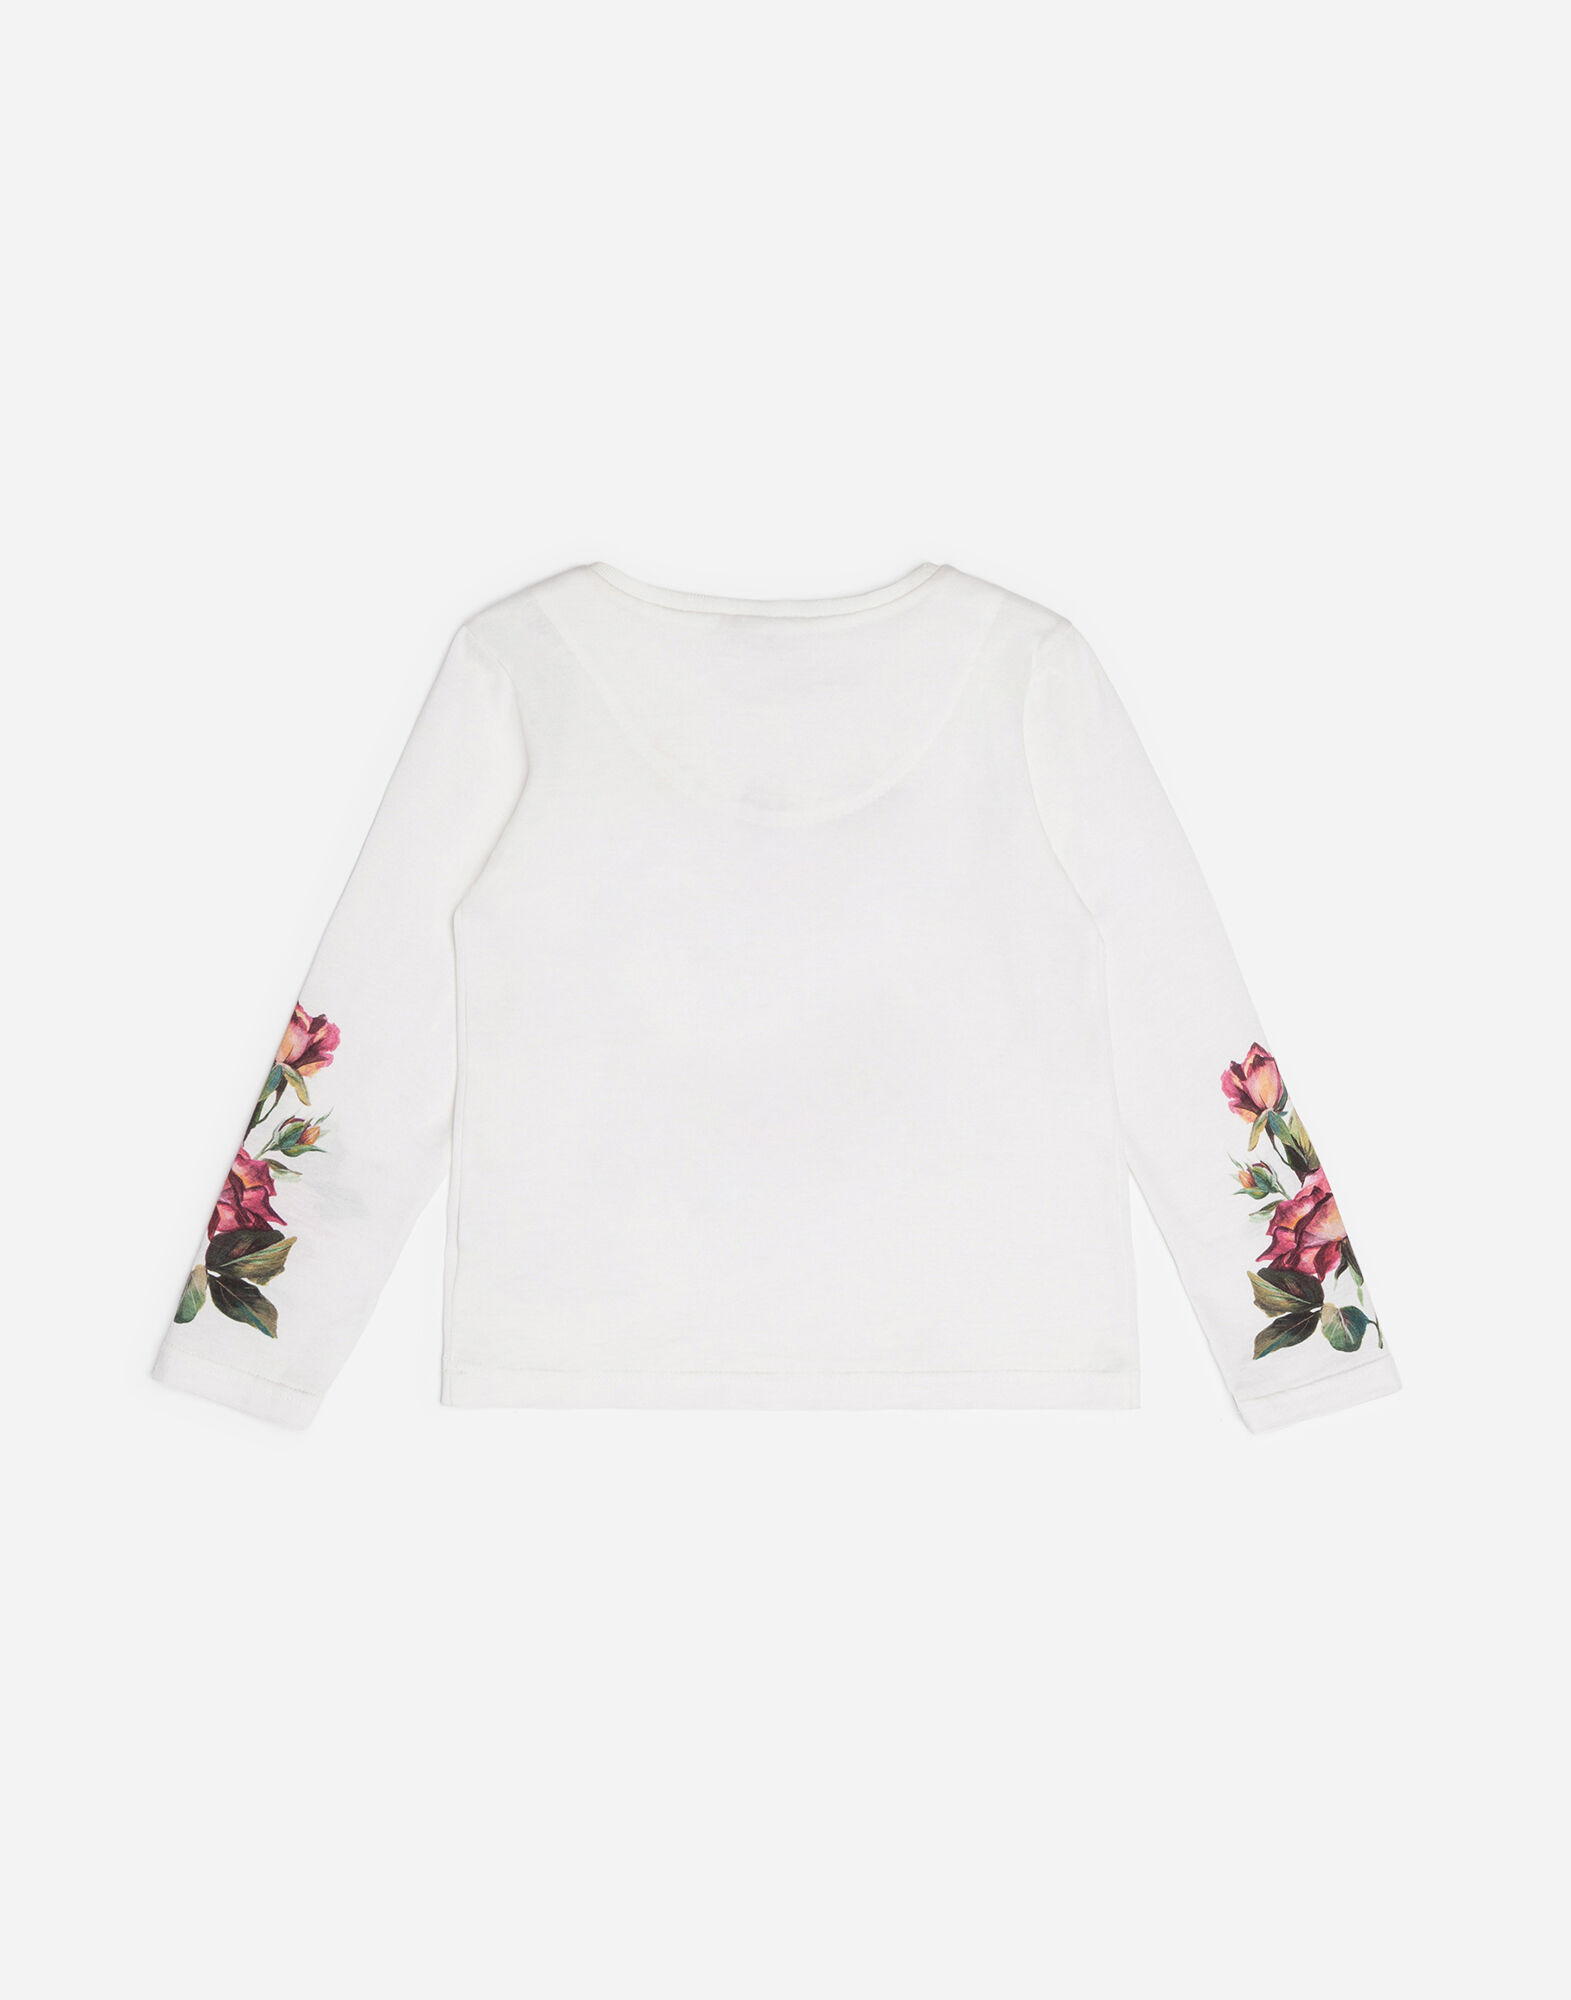 PRINTED COTTON T-SHIRT WITH PATCHES